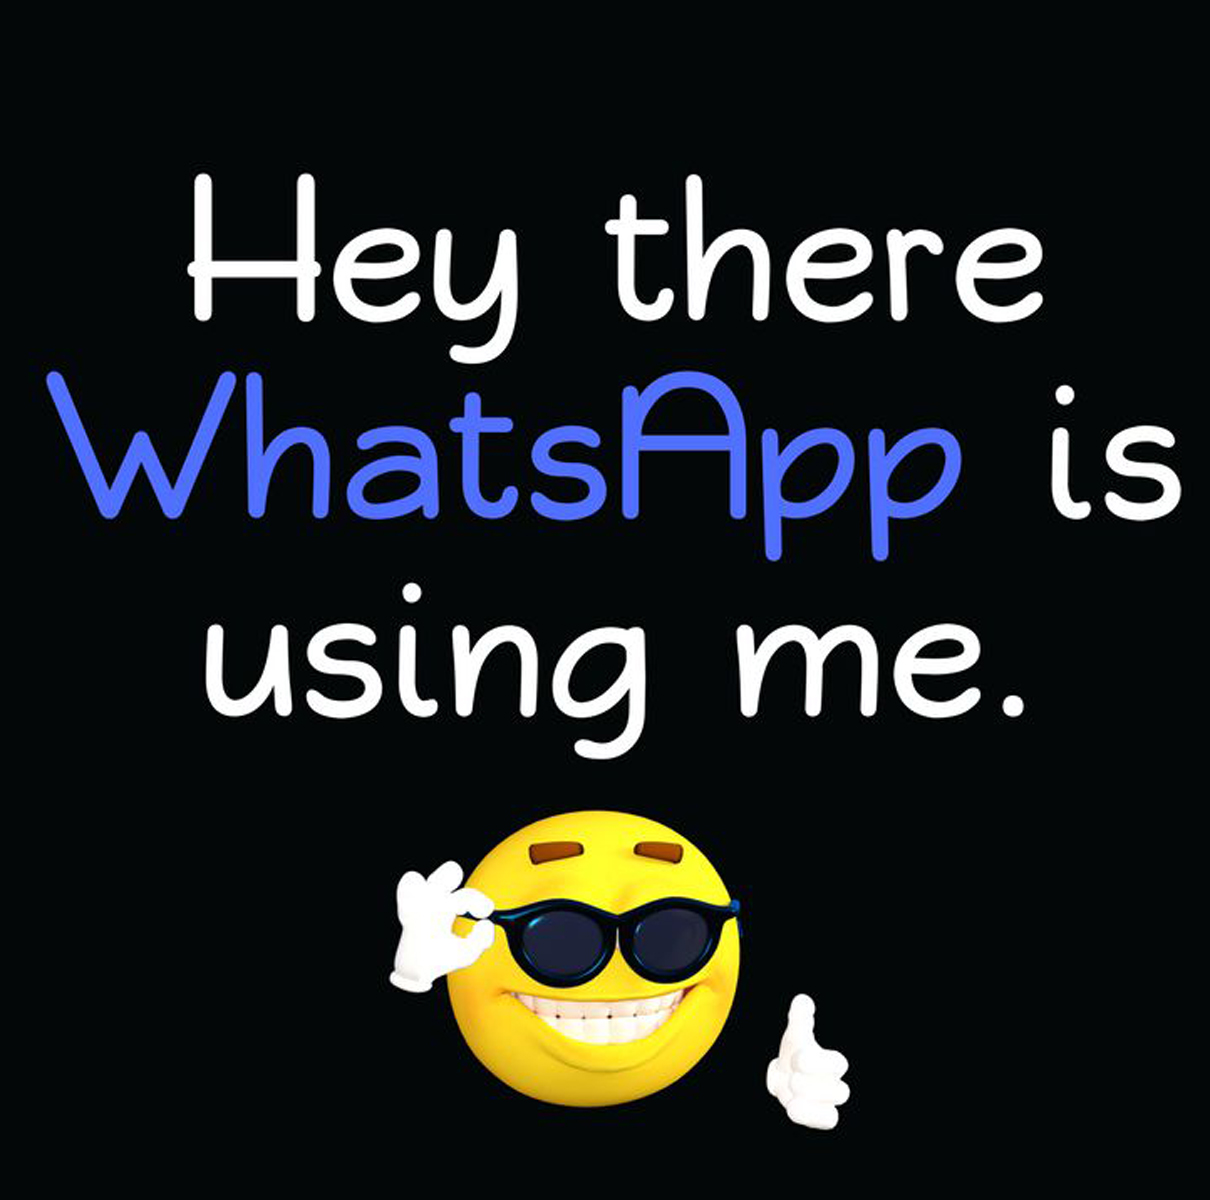 FUNNY WHATSAPP DP PROFILE IMAGES PHOTO WALLPAPER FREE DOWNLOAD